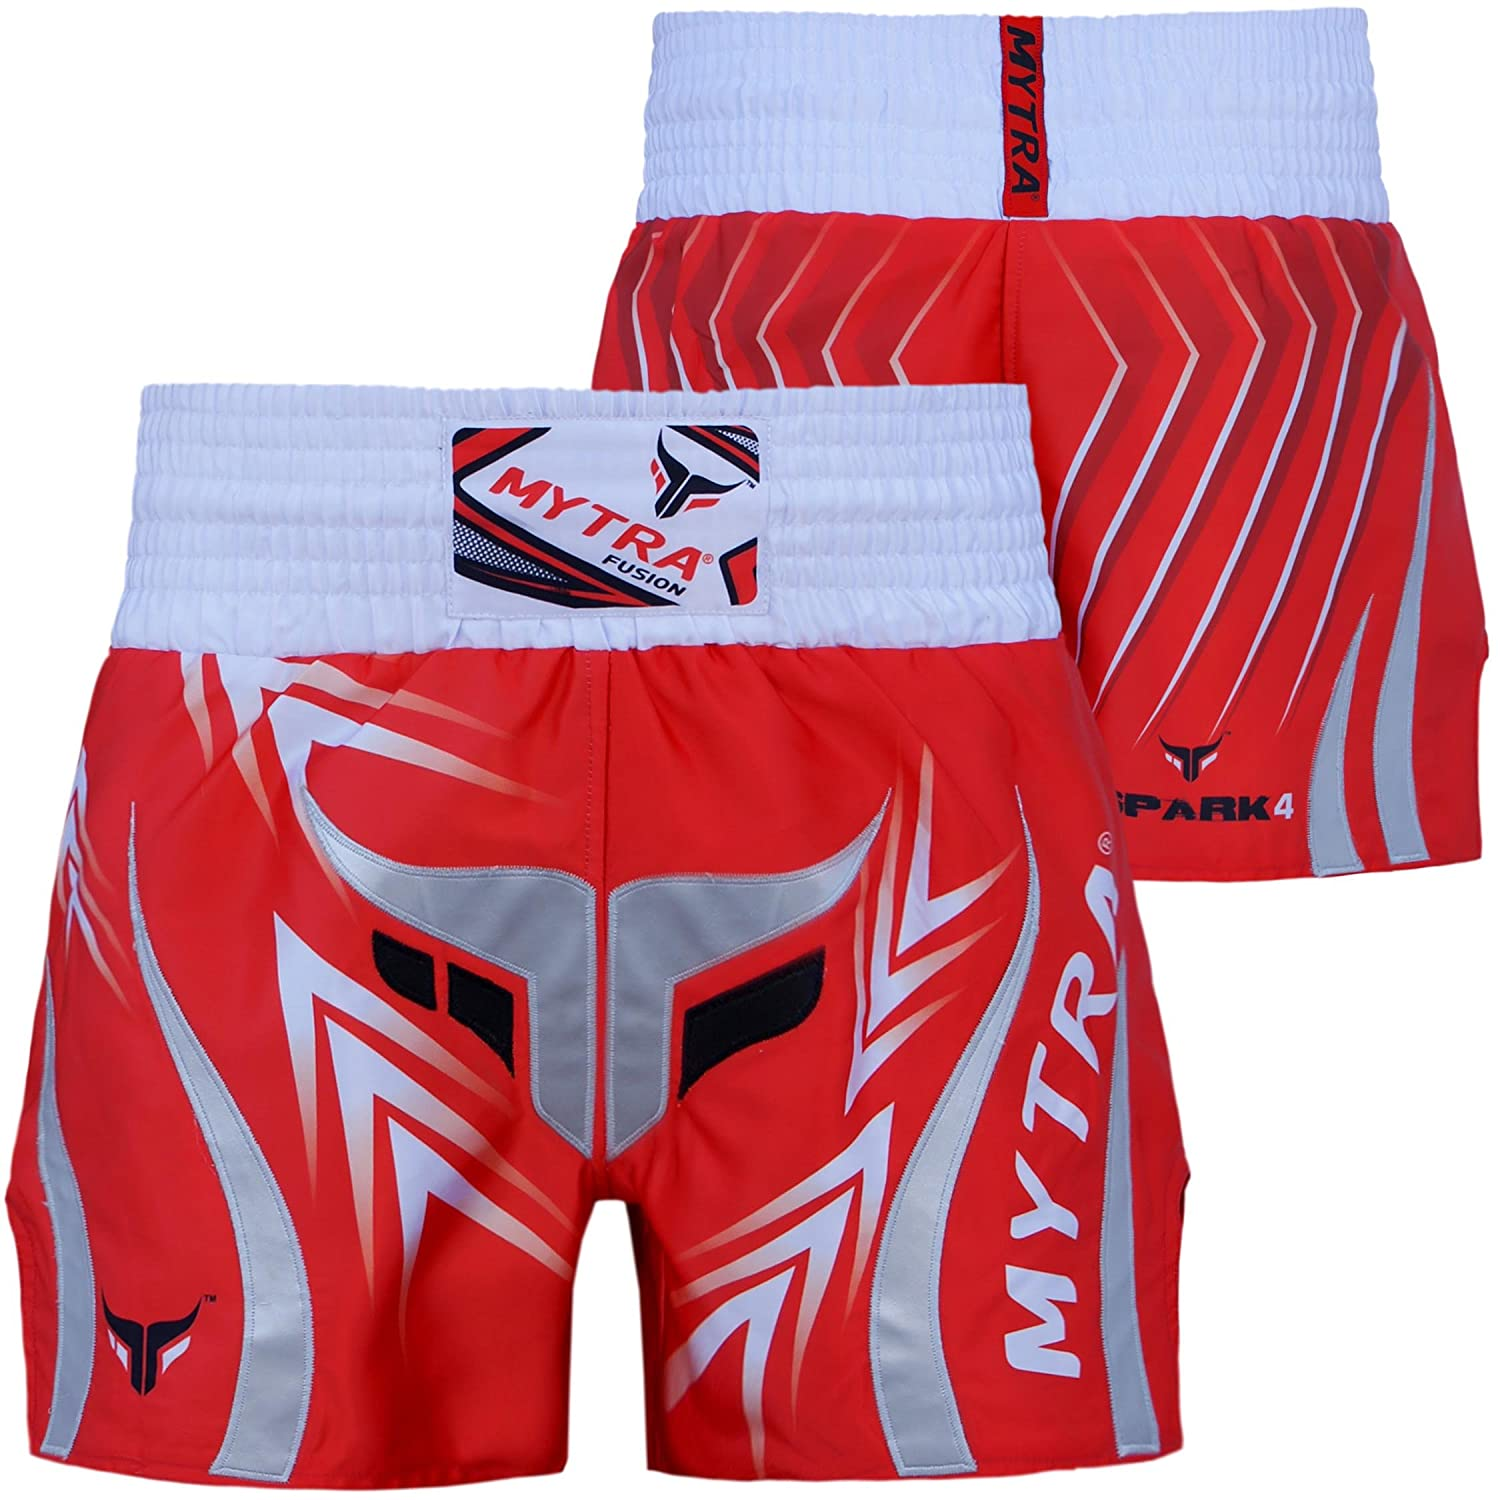 Mytra Fusion Pro Boxing Shorts for Muay Thai Training Punching, Sparring Fitness Gym Clothing Fairtex jiu jitsu MMA Muay Thai Kickboxing Equipment Trunks